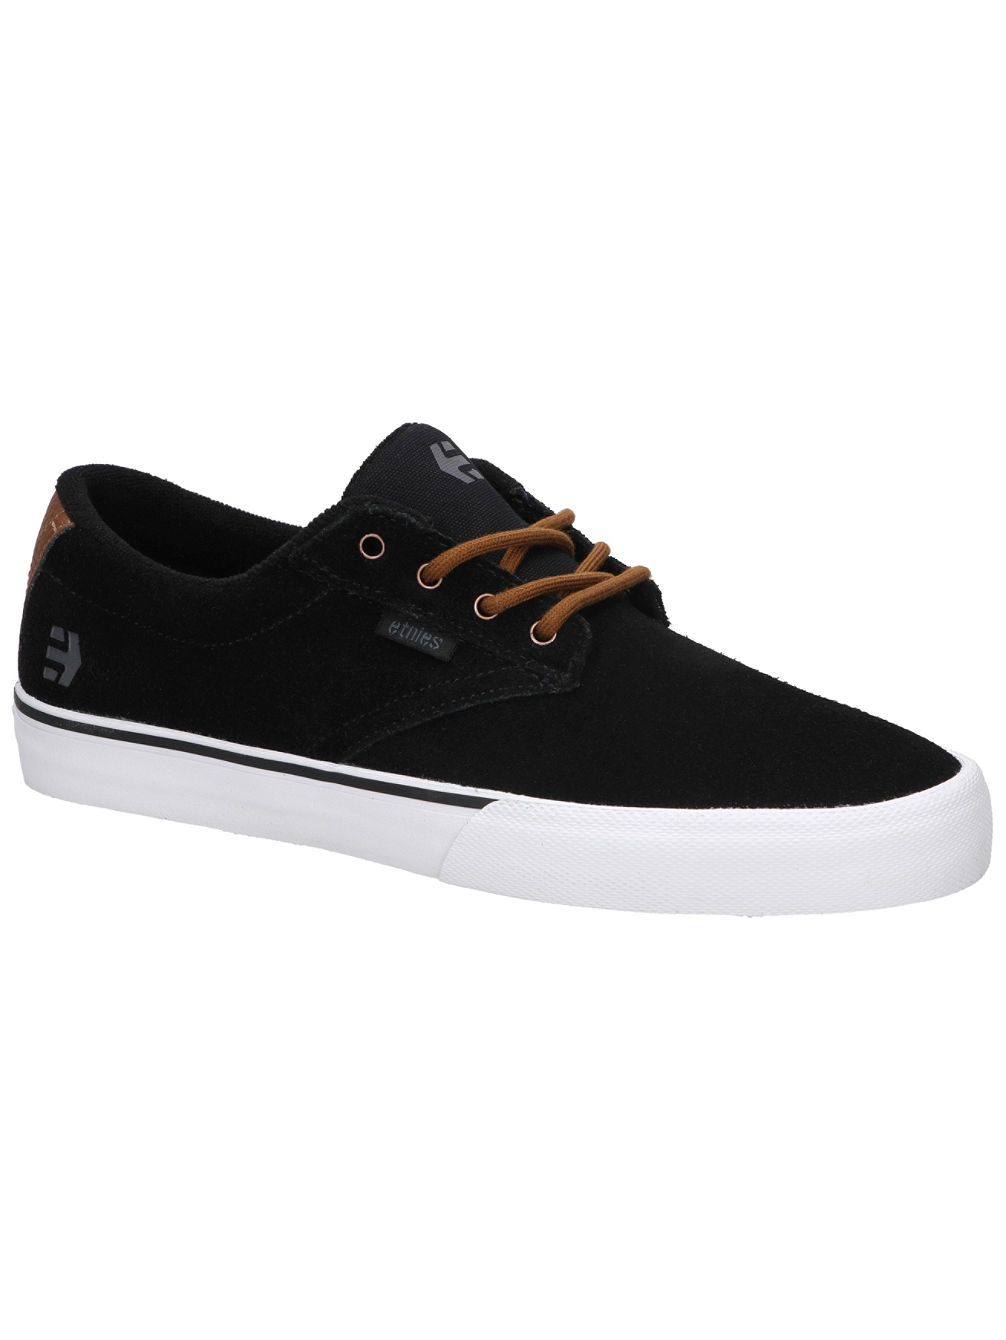 Jameson Vulc Skate Shoes